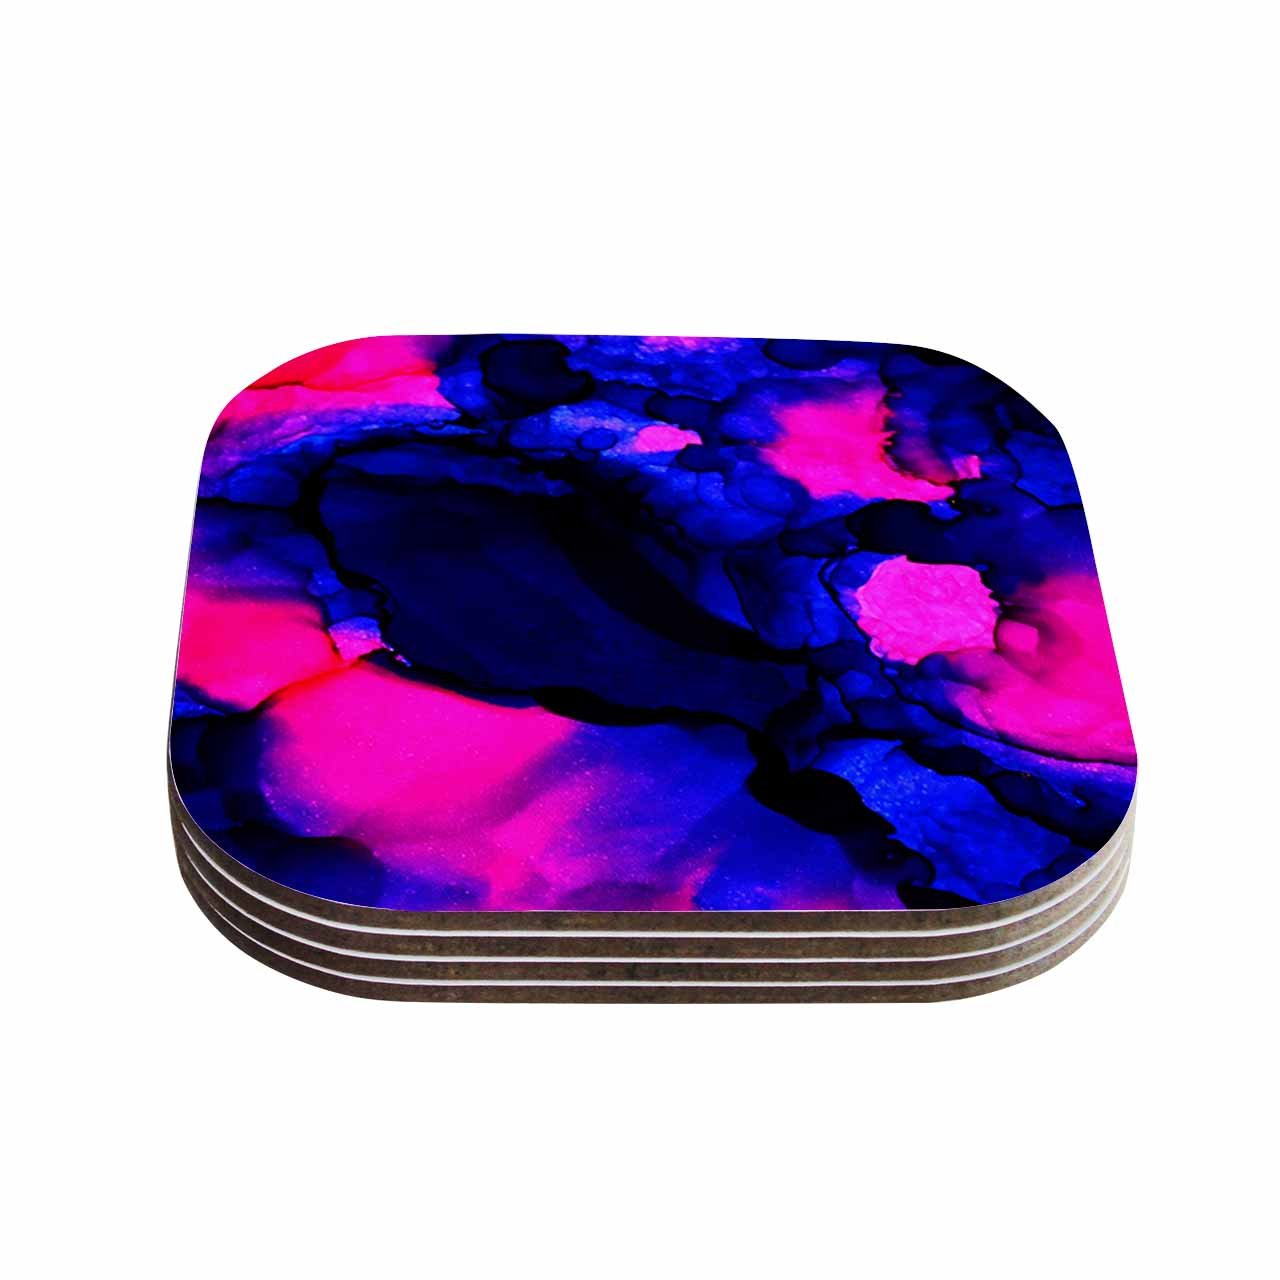 Multi 4 x 4 KESS InHouse Claire DayPink Jellies Pink Blue Abstract Painting Coasters Set of 4